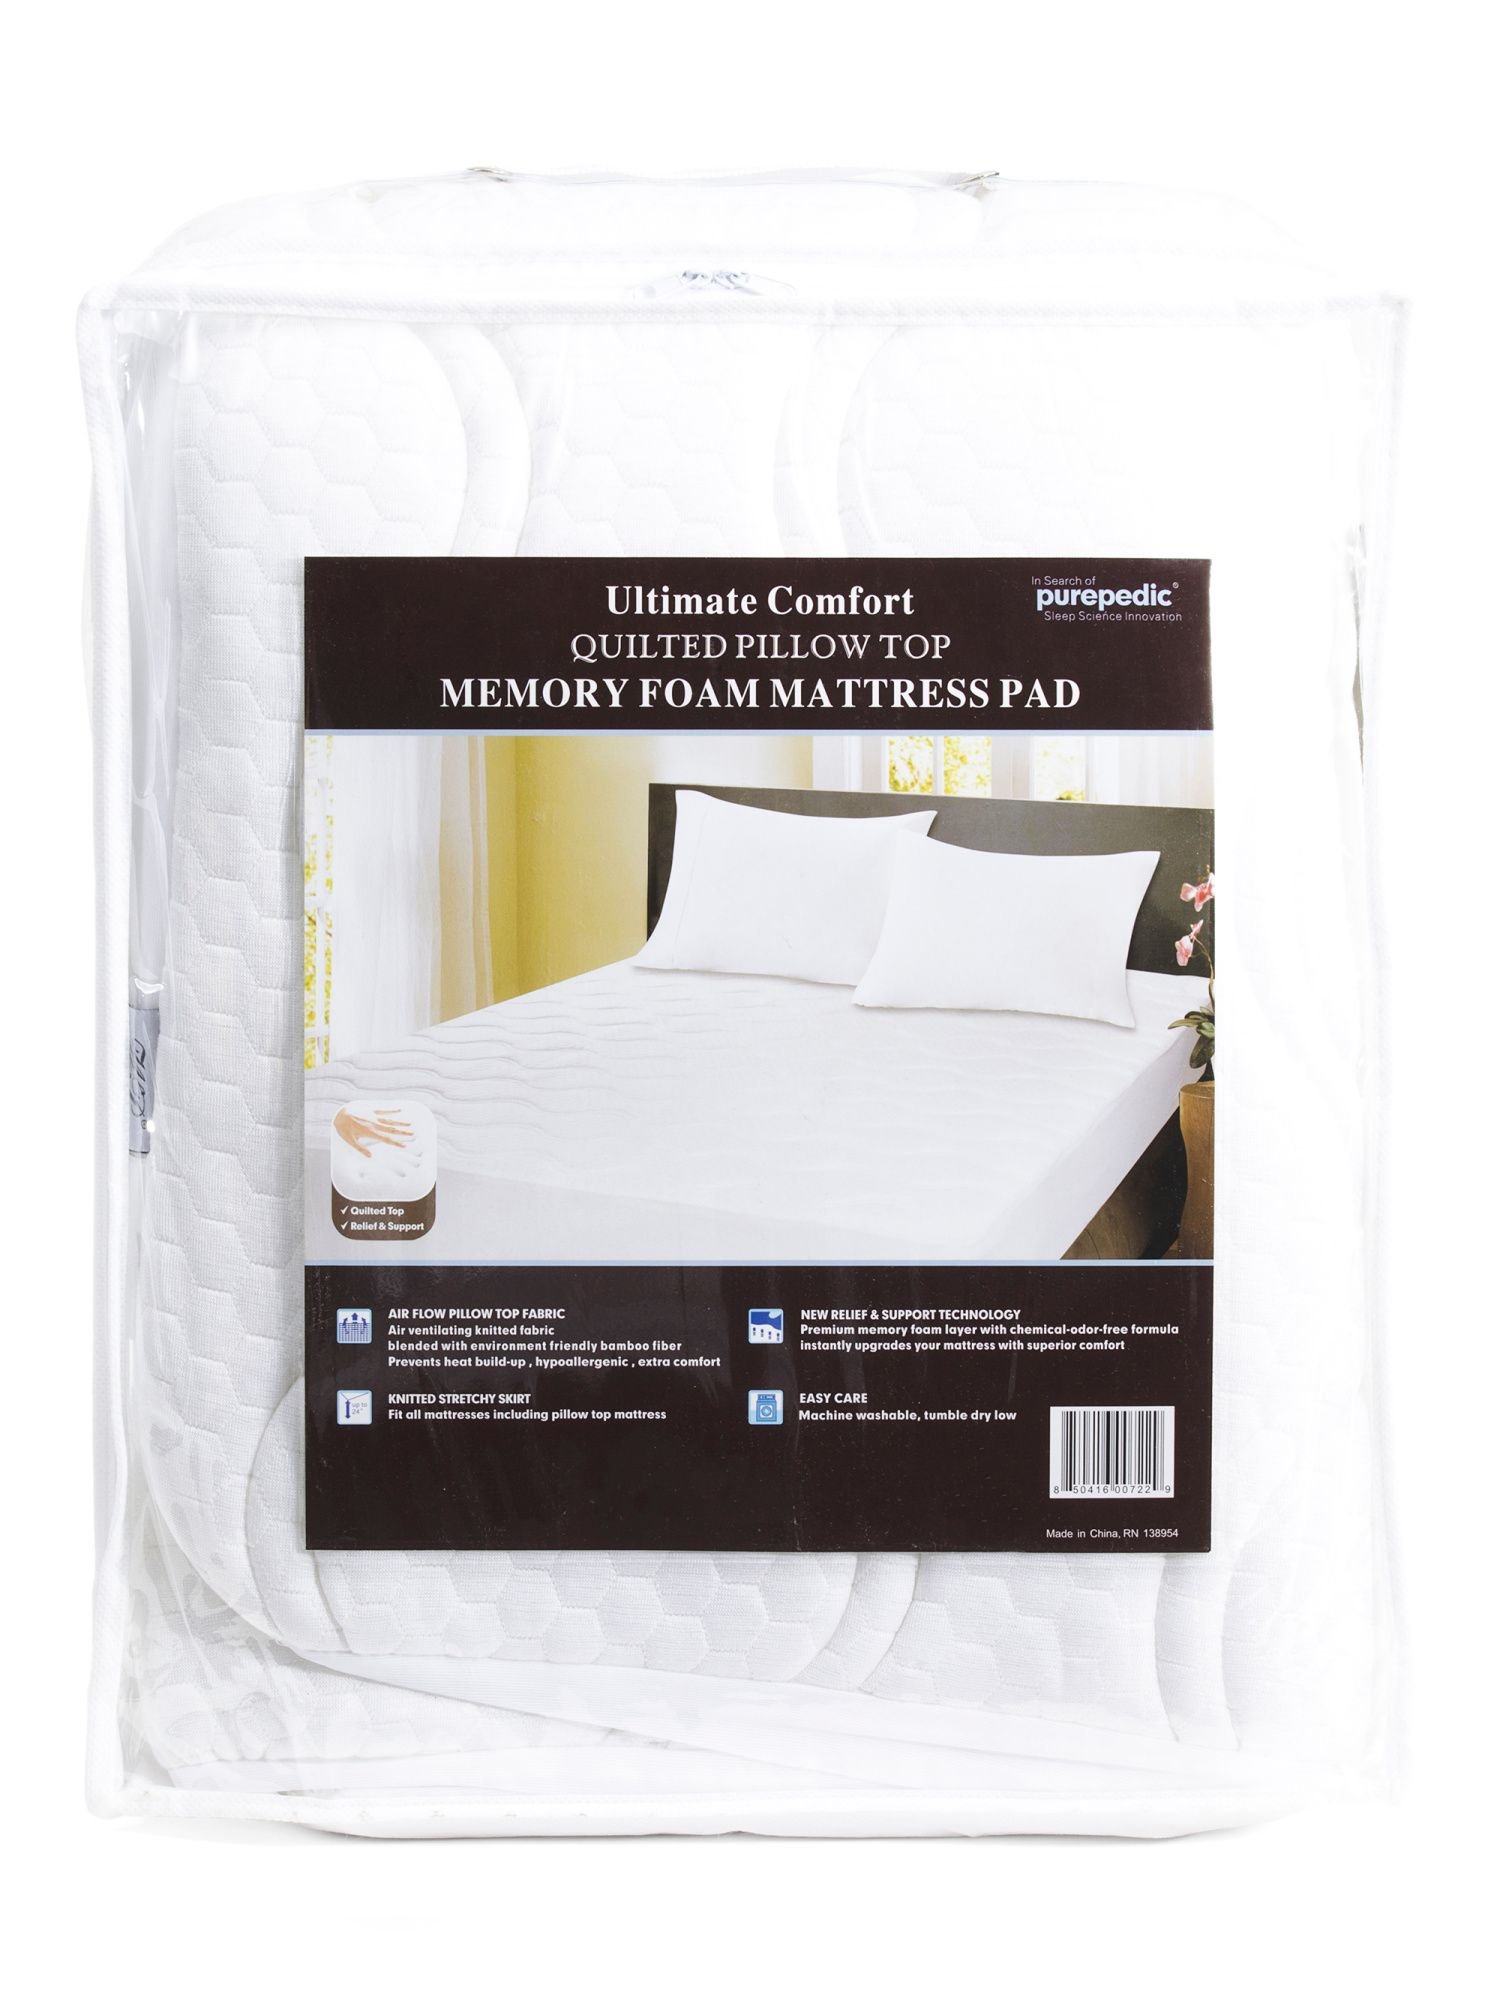 maxx home image you tjmaxx from j bed culture these are the fantastic feature buy should always t bedding products tj